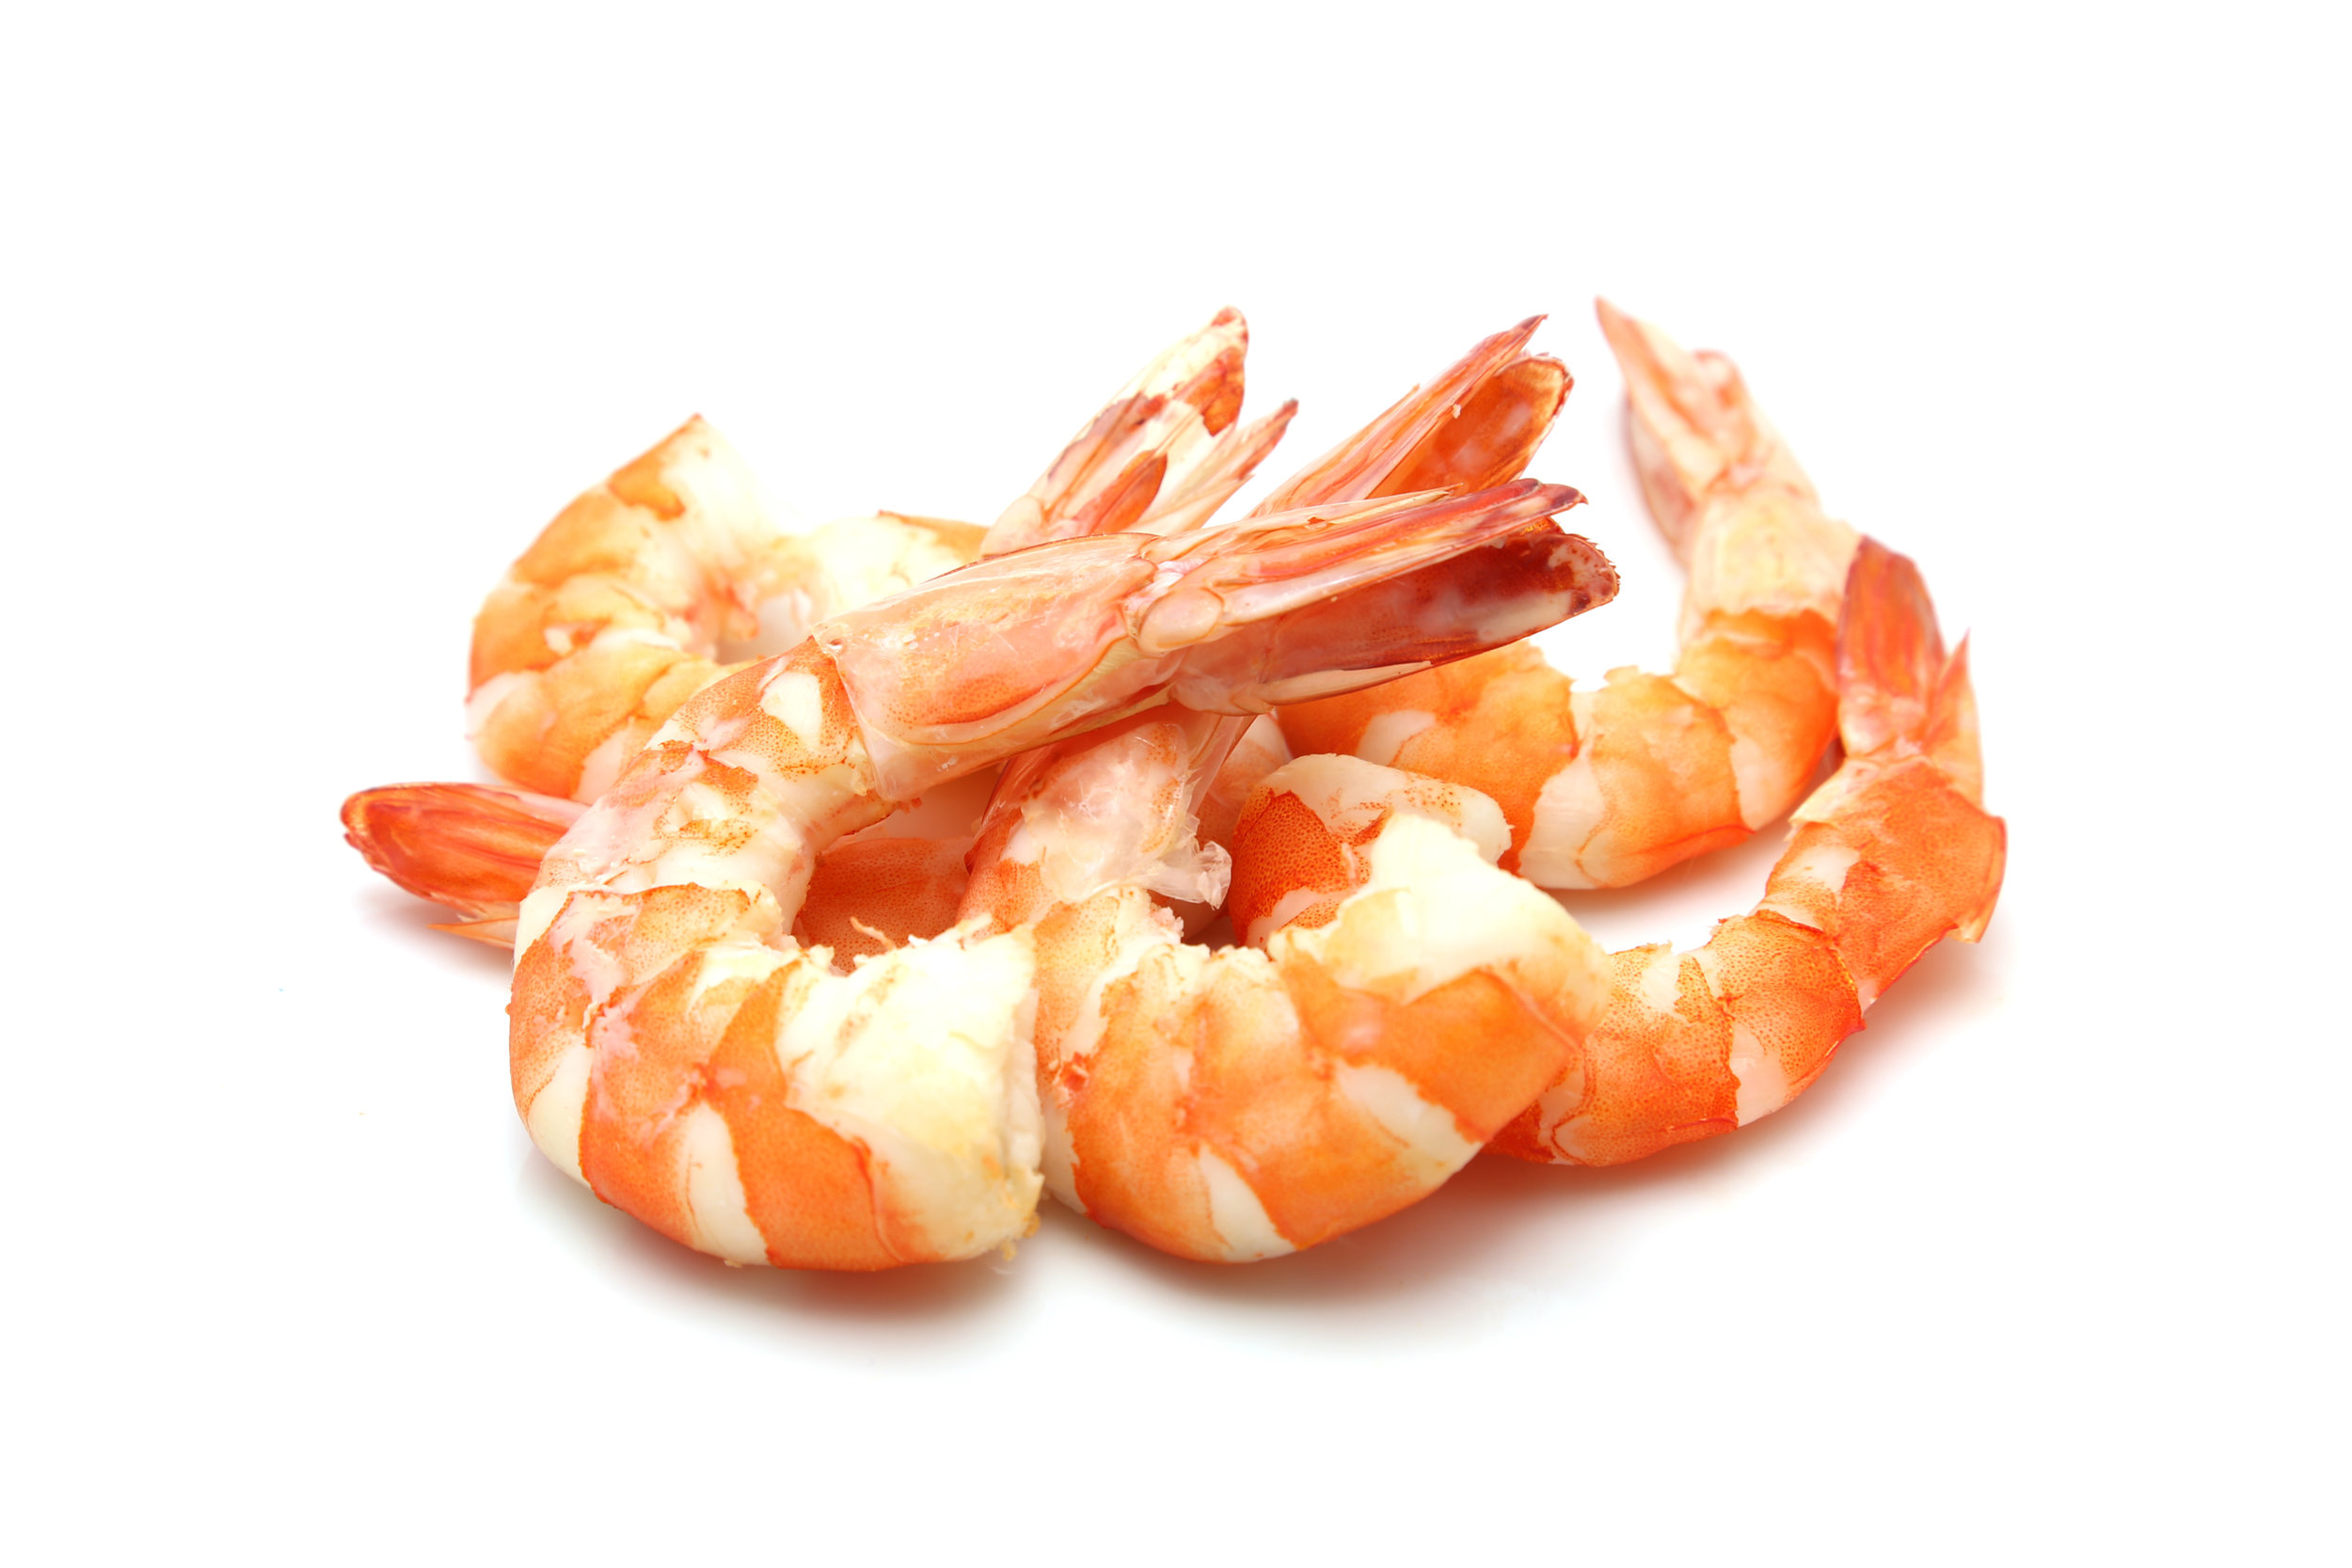 COOKED SHRIMP.jpg